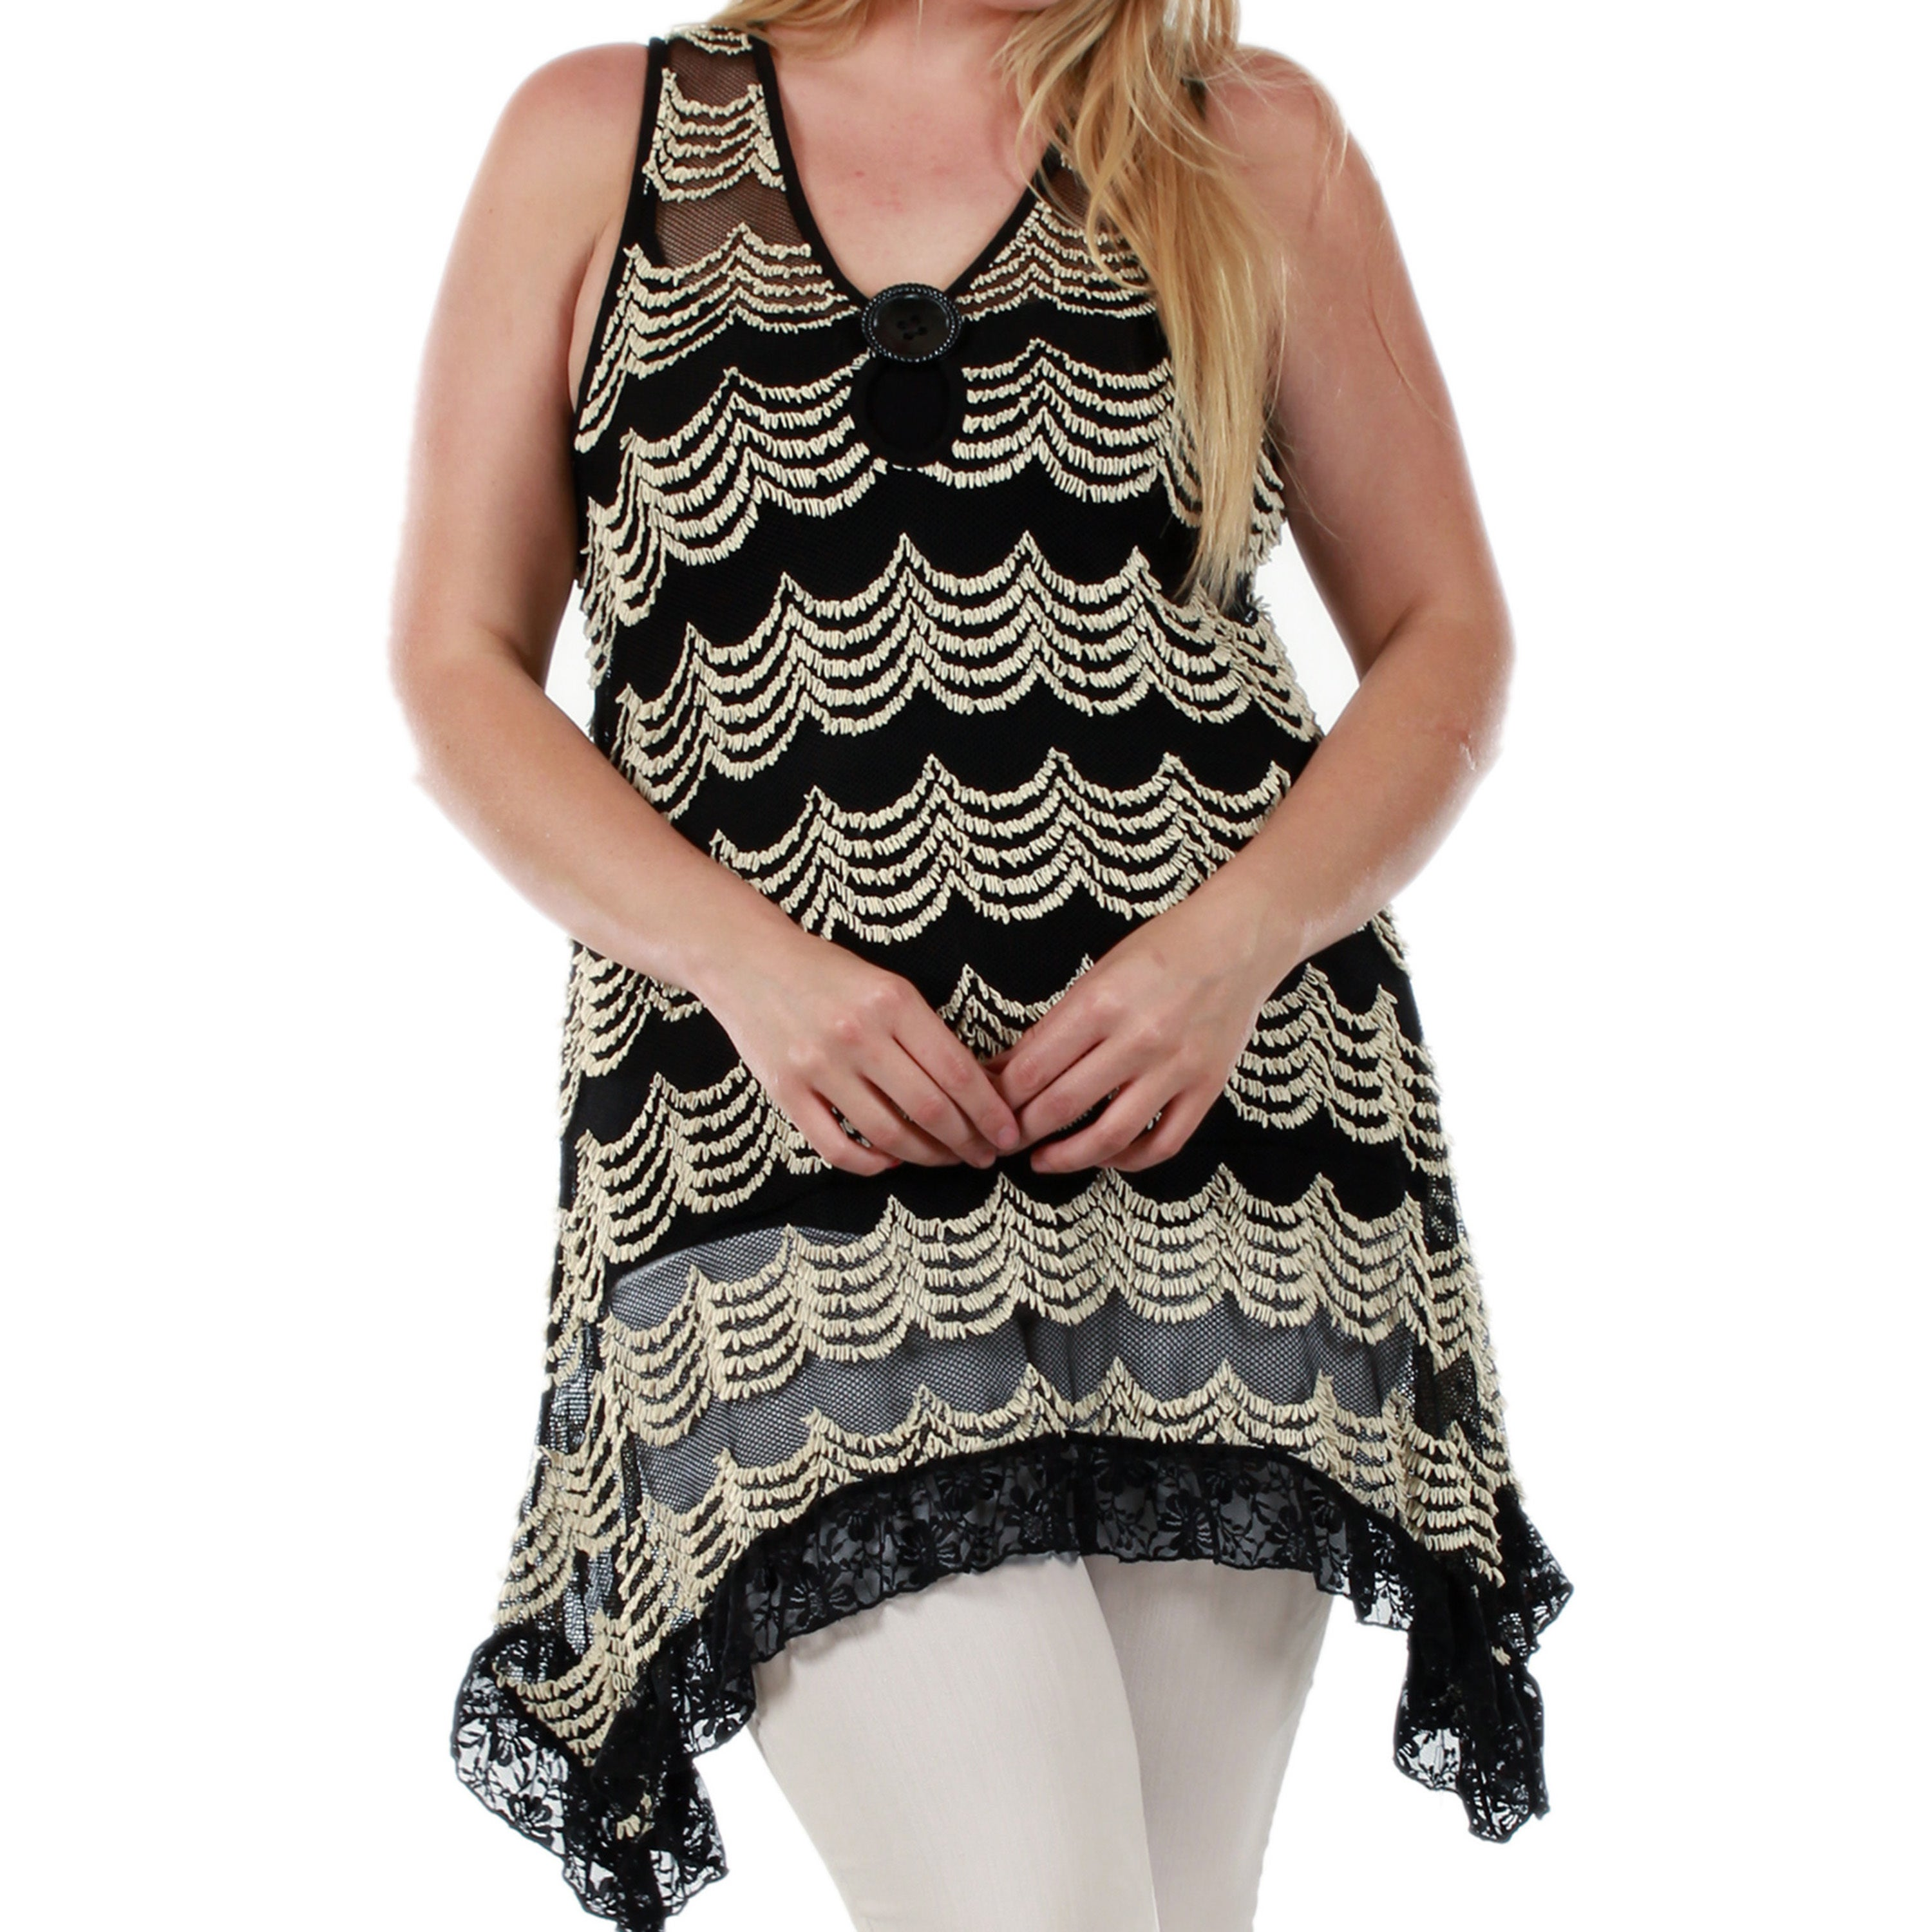 8f9d23f4ecc Shop Firmiana Women s Plus Size Sleeveless Black and Gold Tunic - Free  Shipping On Orders Over  45 - Overstock.com - 10568451